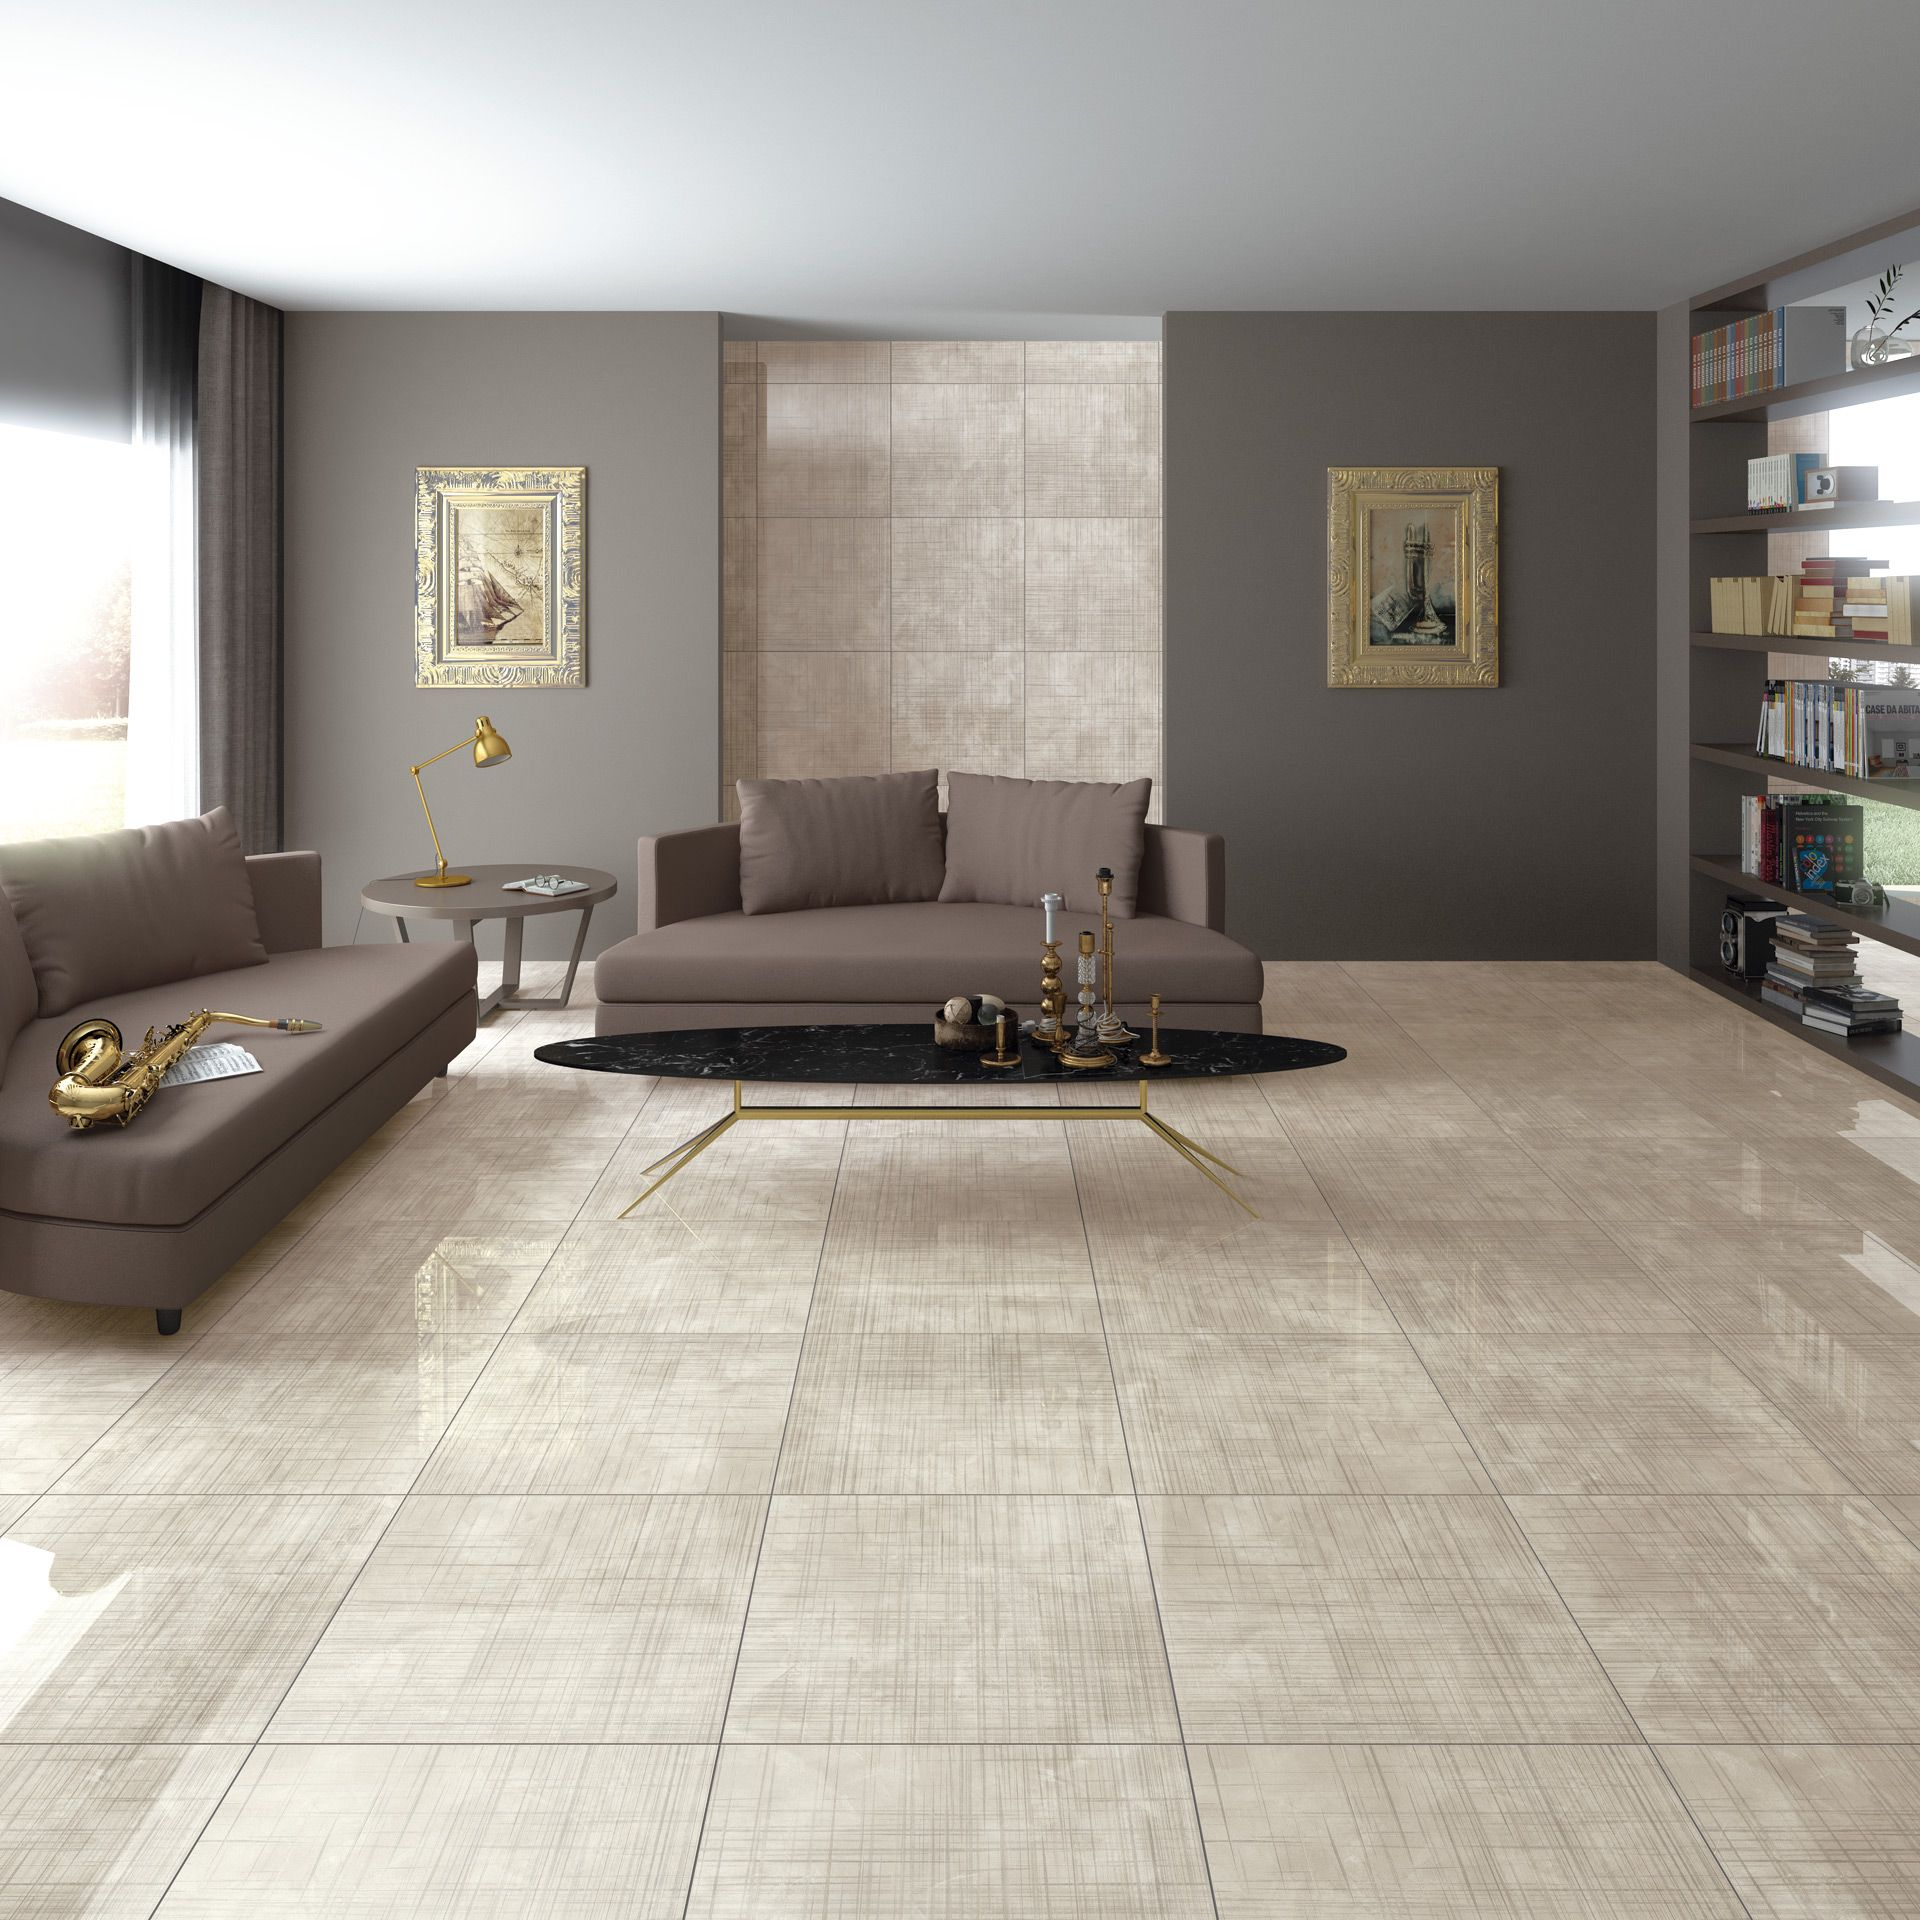 Modern Garage Floor Tiles Design With Grey Color Interior: Arcana Tiles